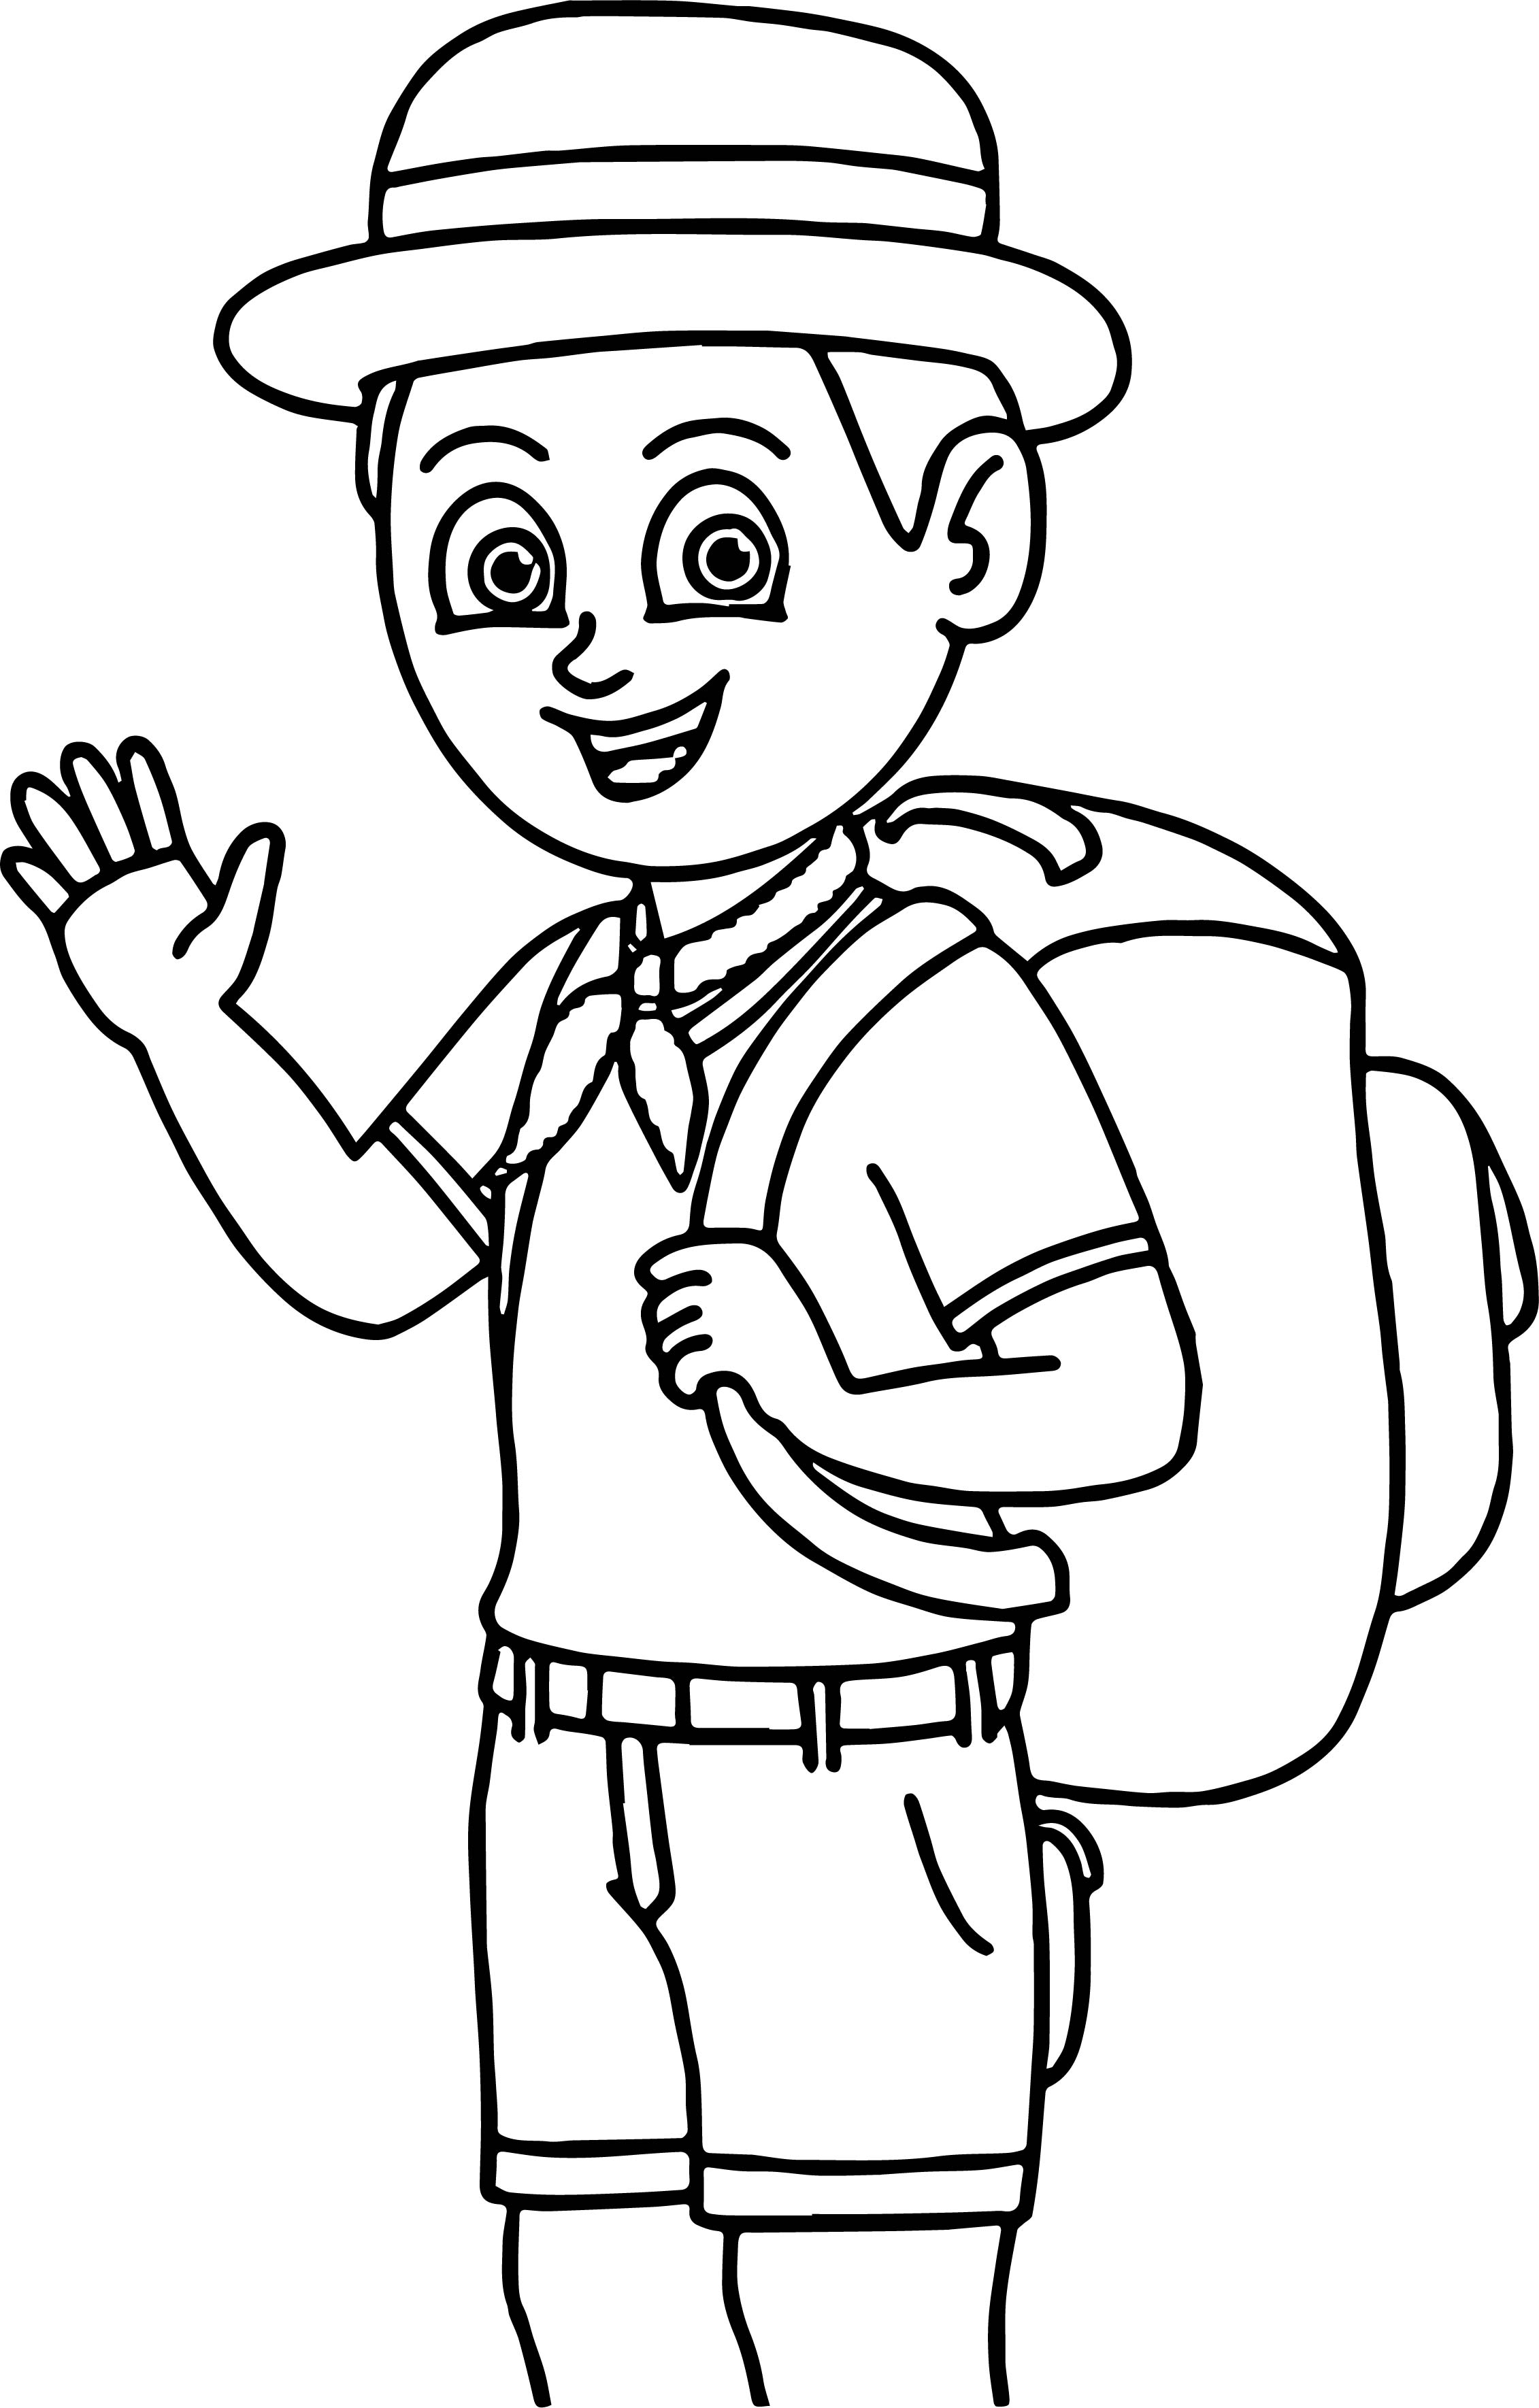 Camping Boy Coloring Page